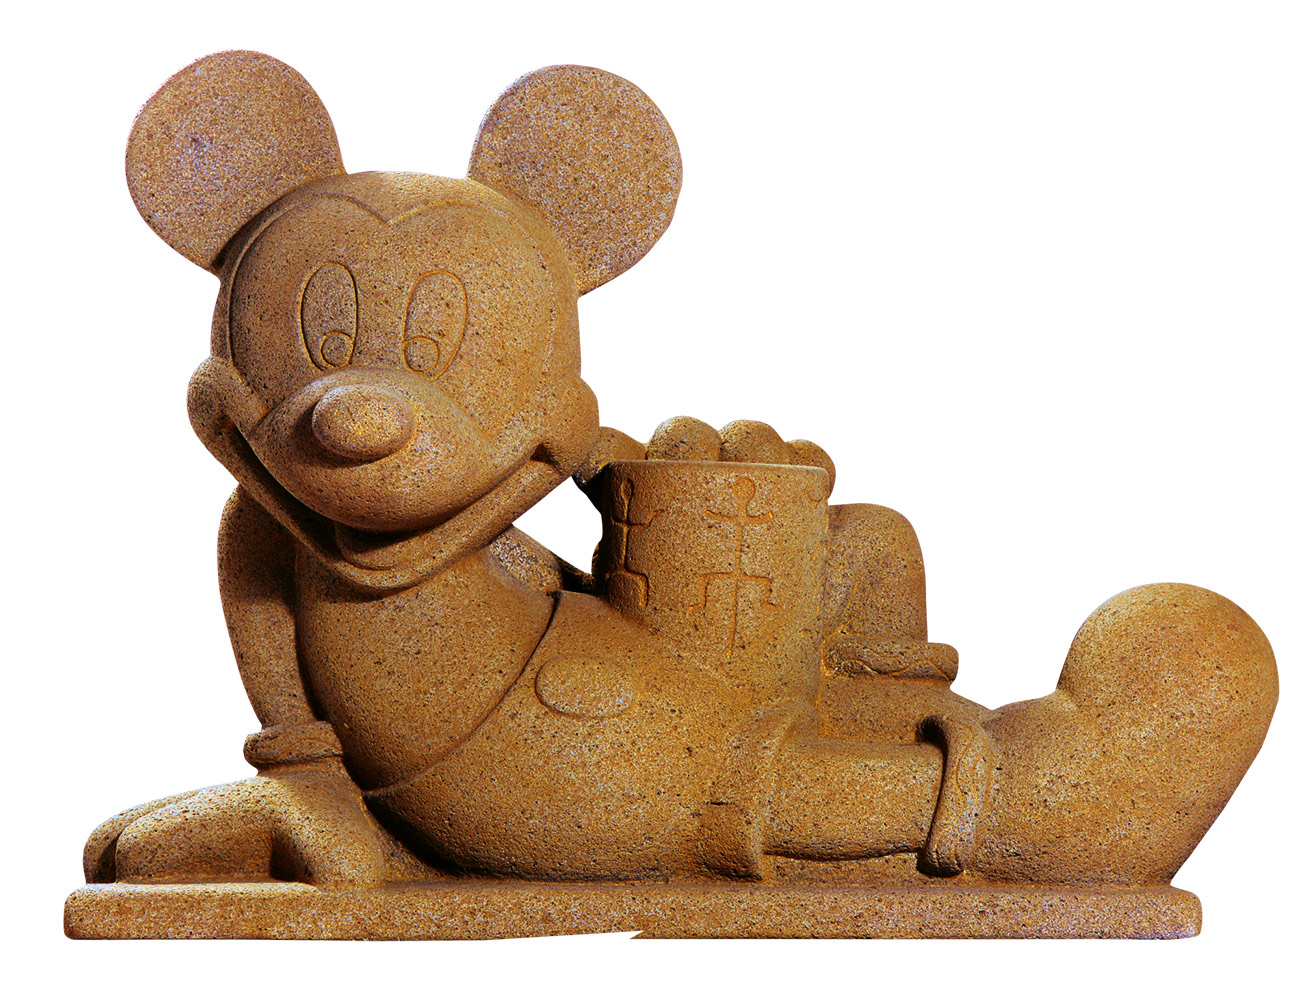 A stone sculpture of a grinning, reclining Mickey Mouse that blends Disney imagery with Aztec forms